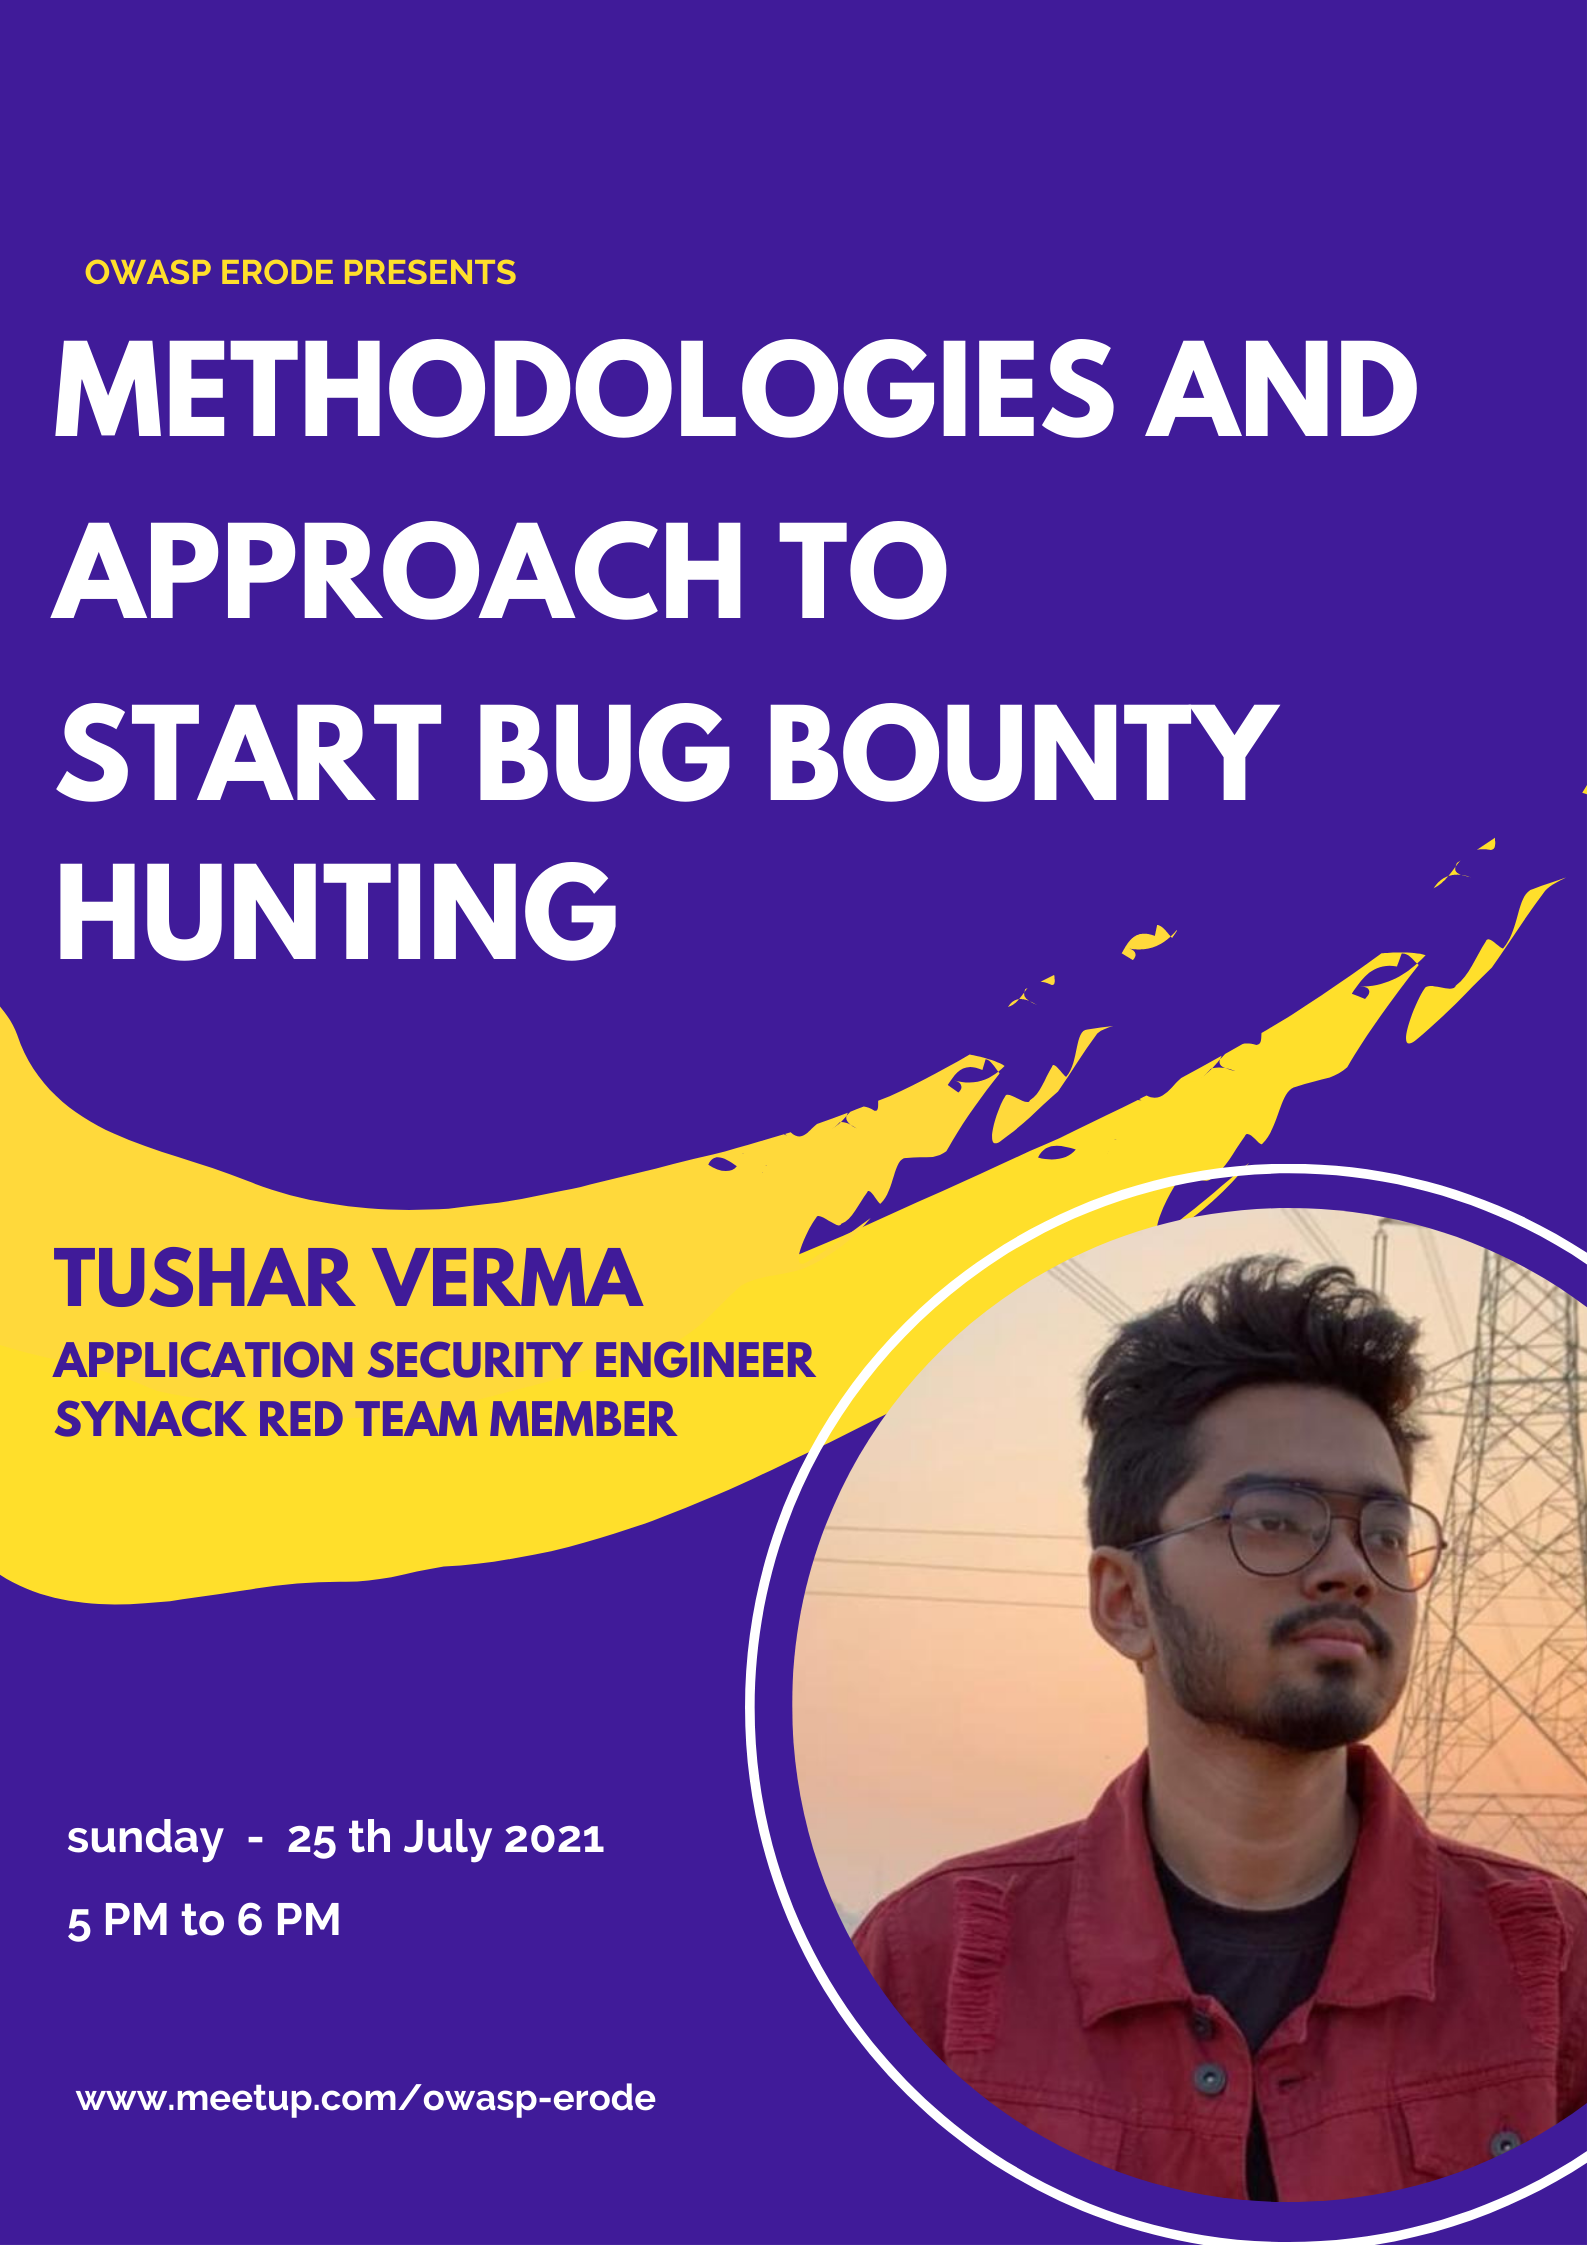 Methodologies and Approach to bug bounty hunting